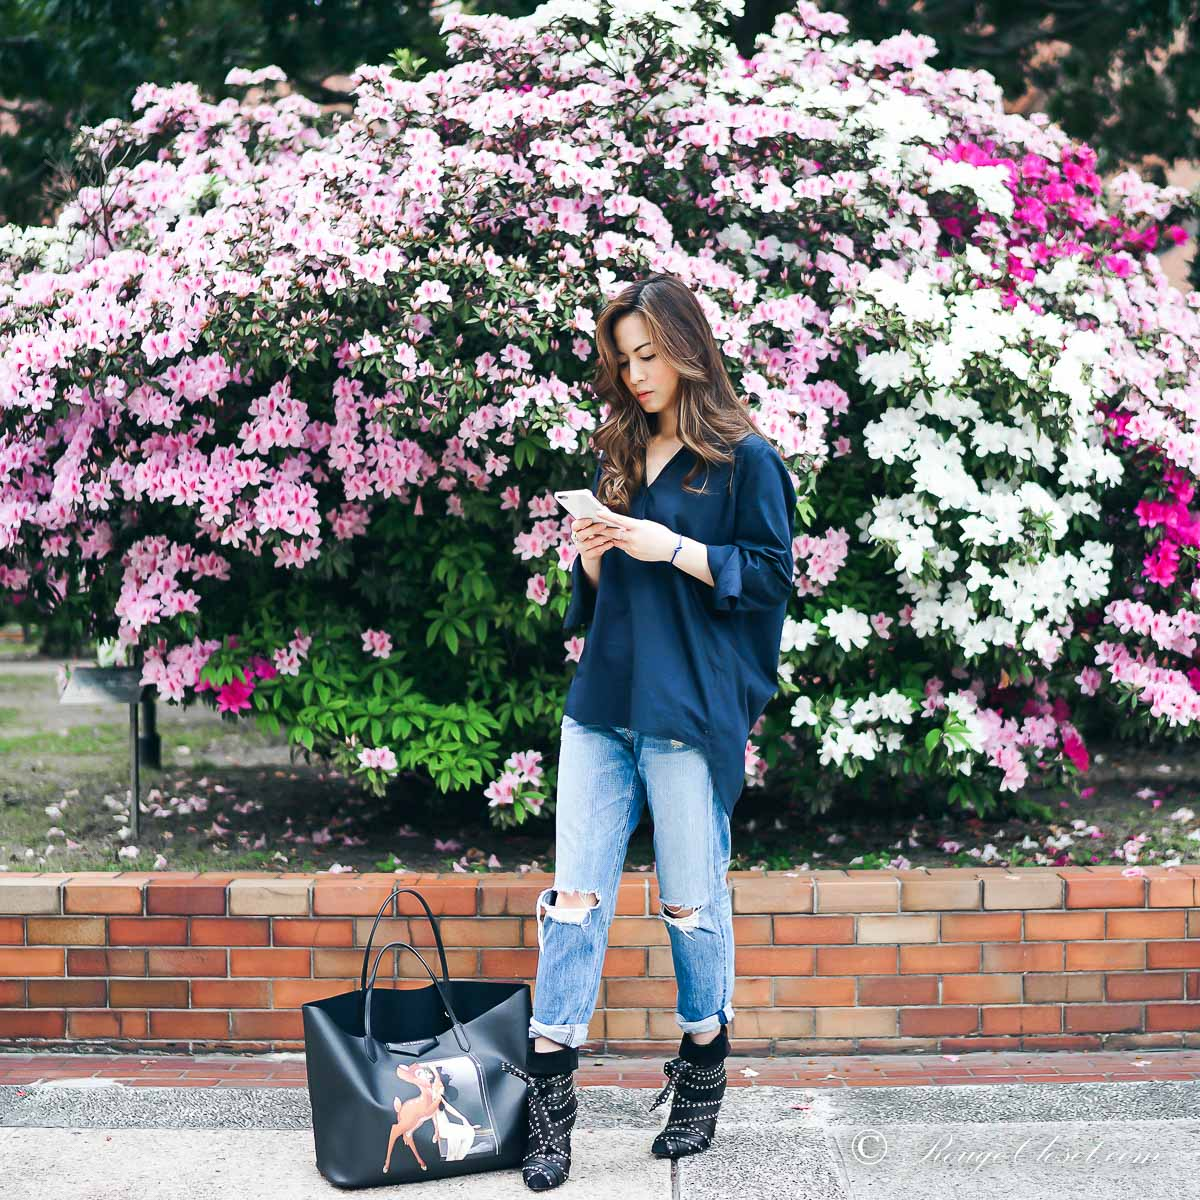 Rouge Closet RC Friday Finds: Distressed Jeans Edit